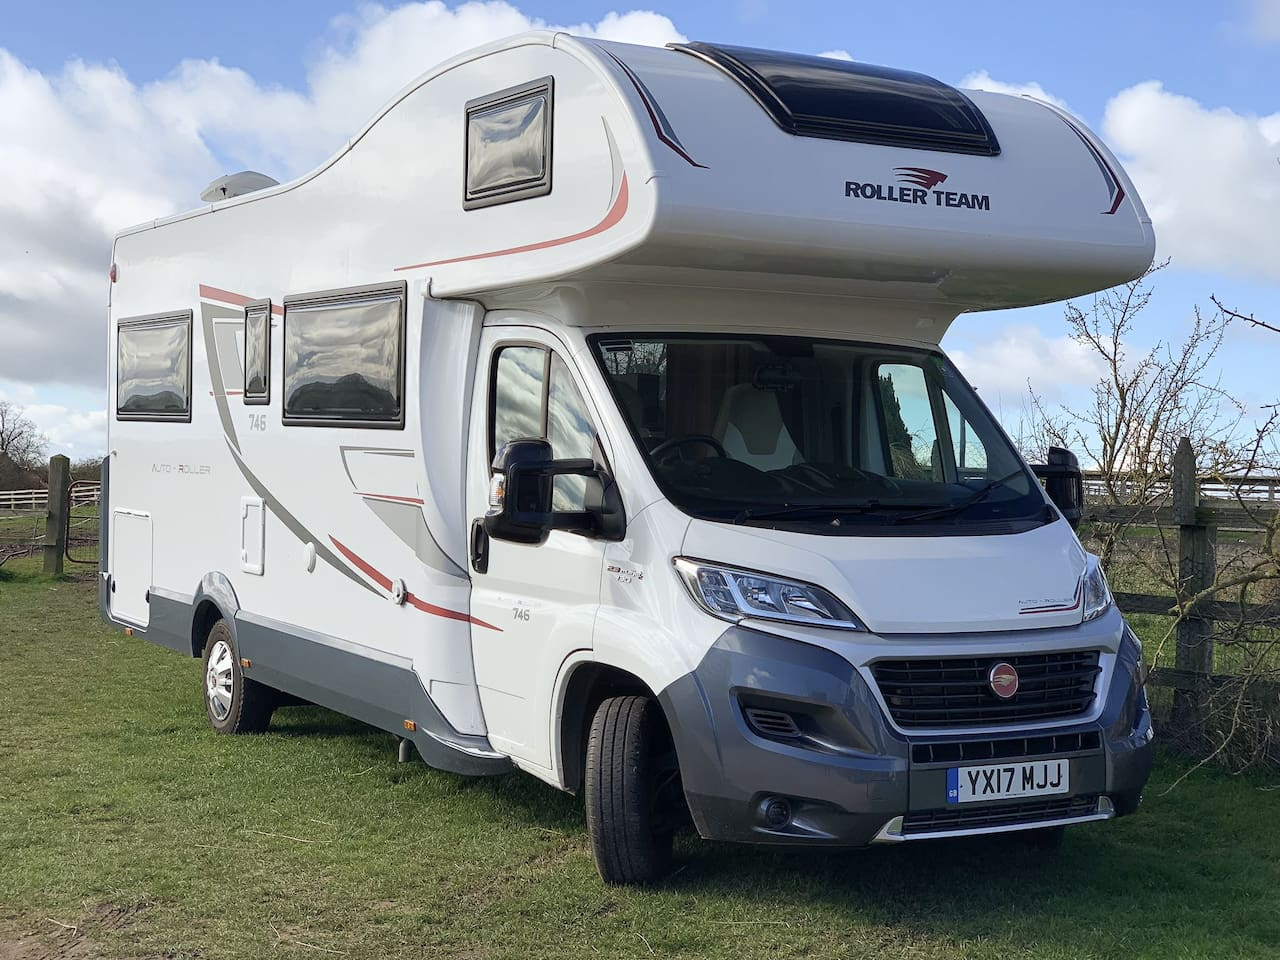 2017 Roller-Team 746 Motorhome with Awning, Solar Panel and Bike Rack.